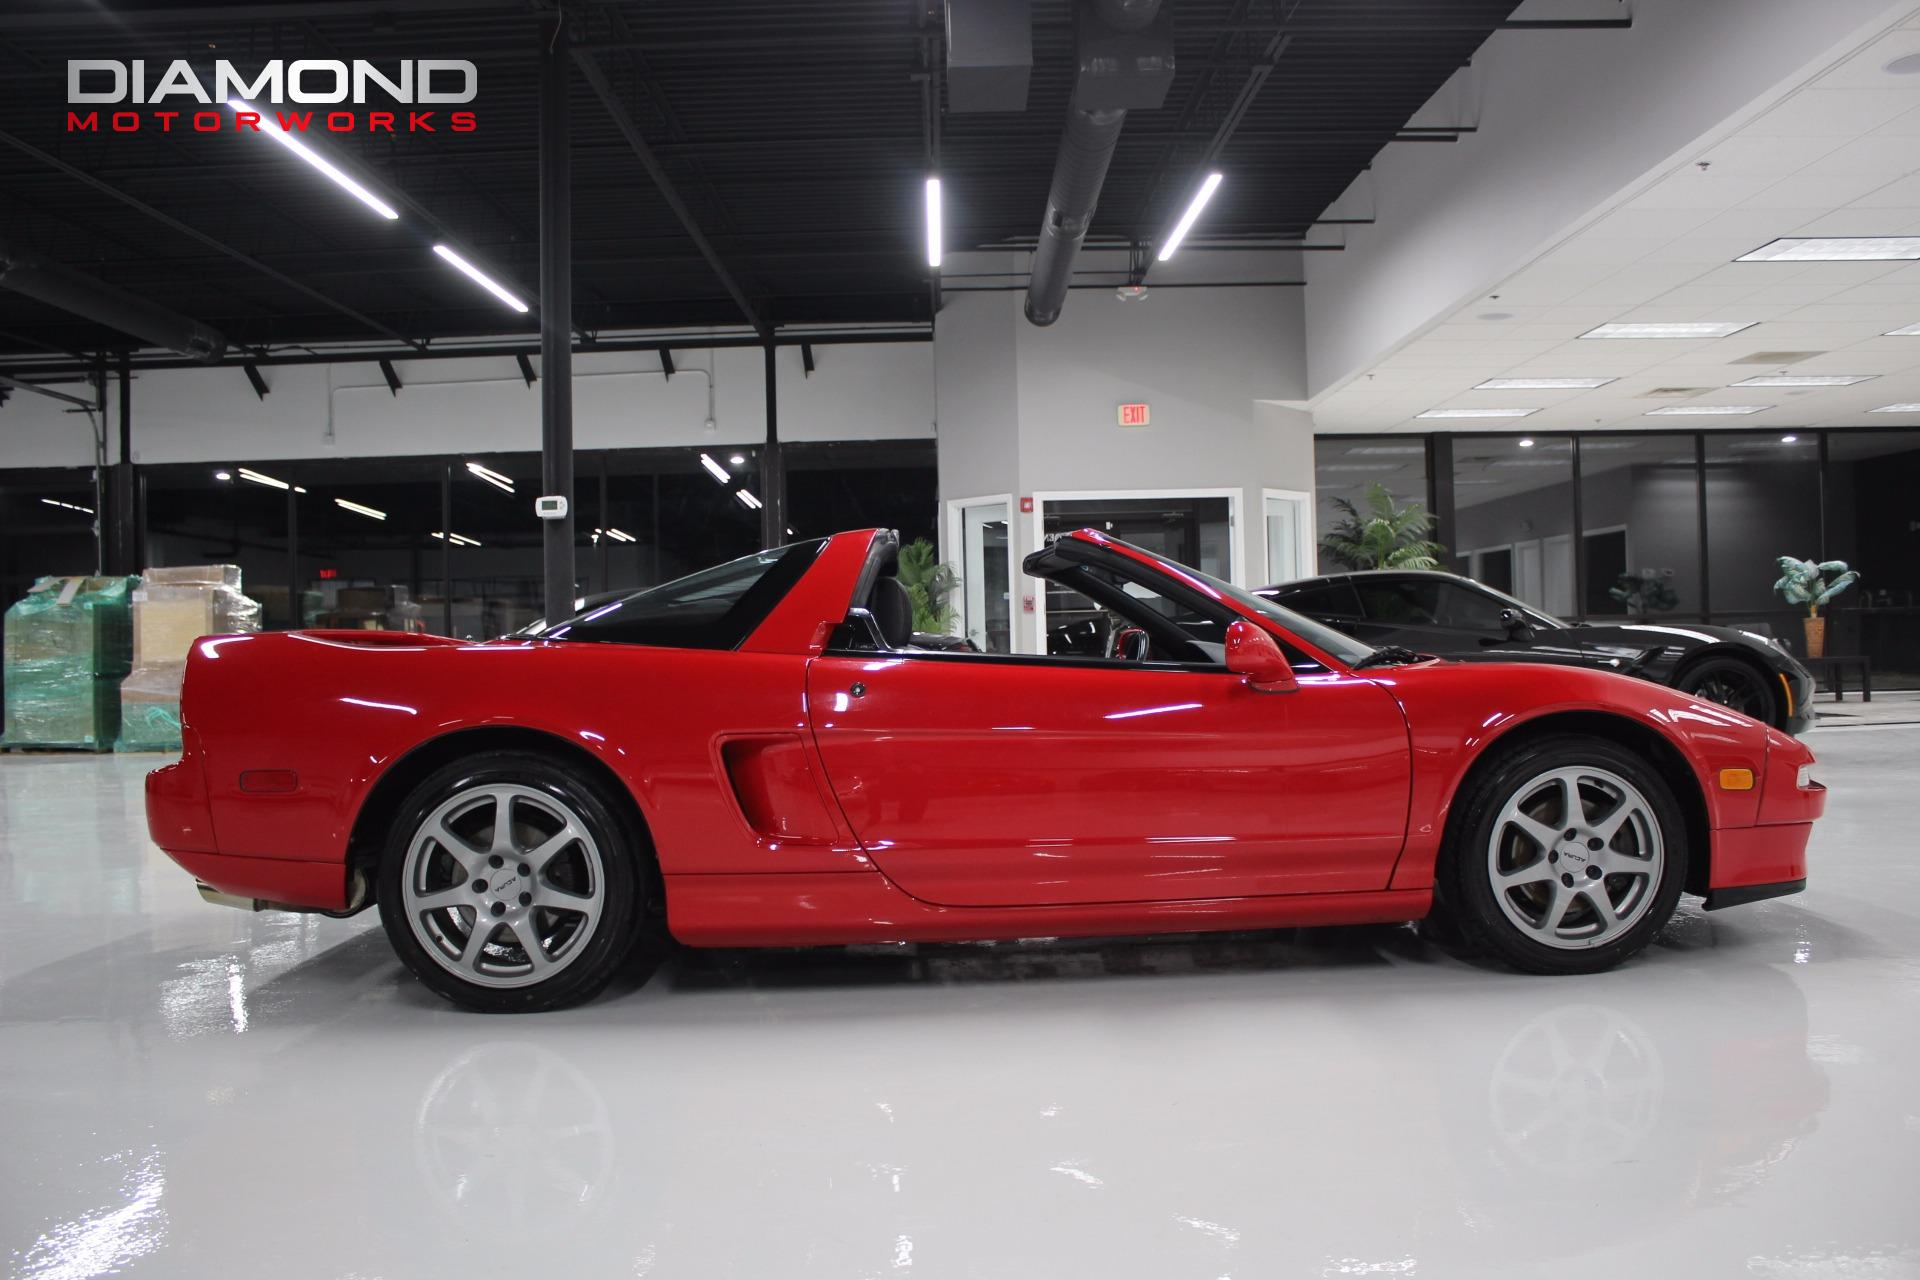 Used Acura Nsx For Sale With Photos Carfax ...